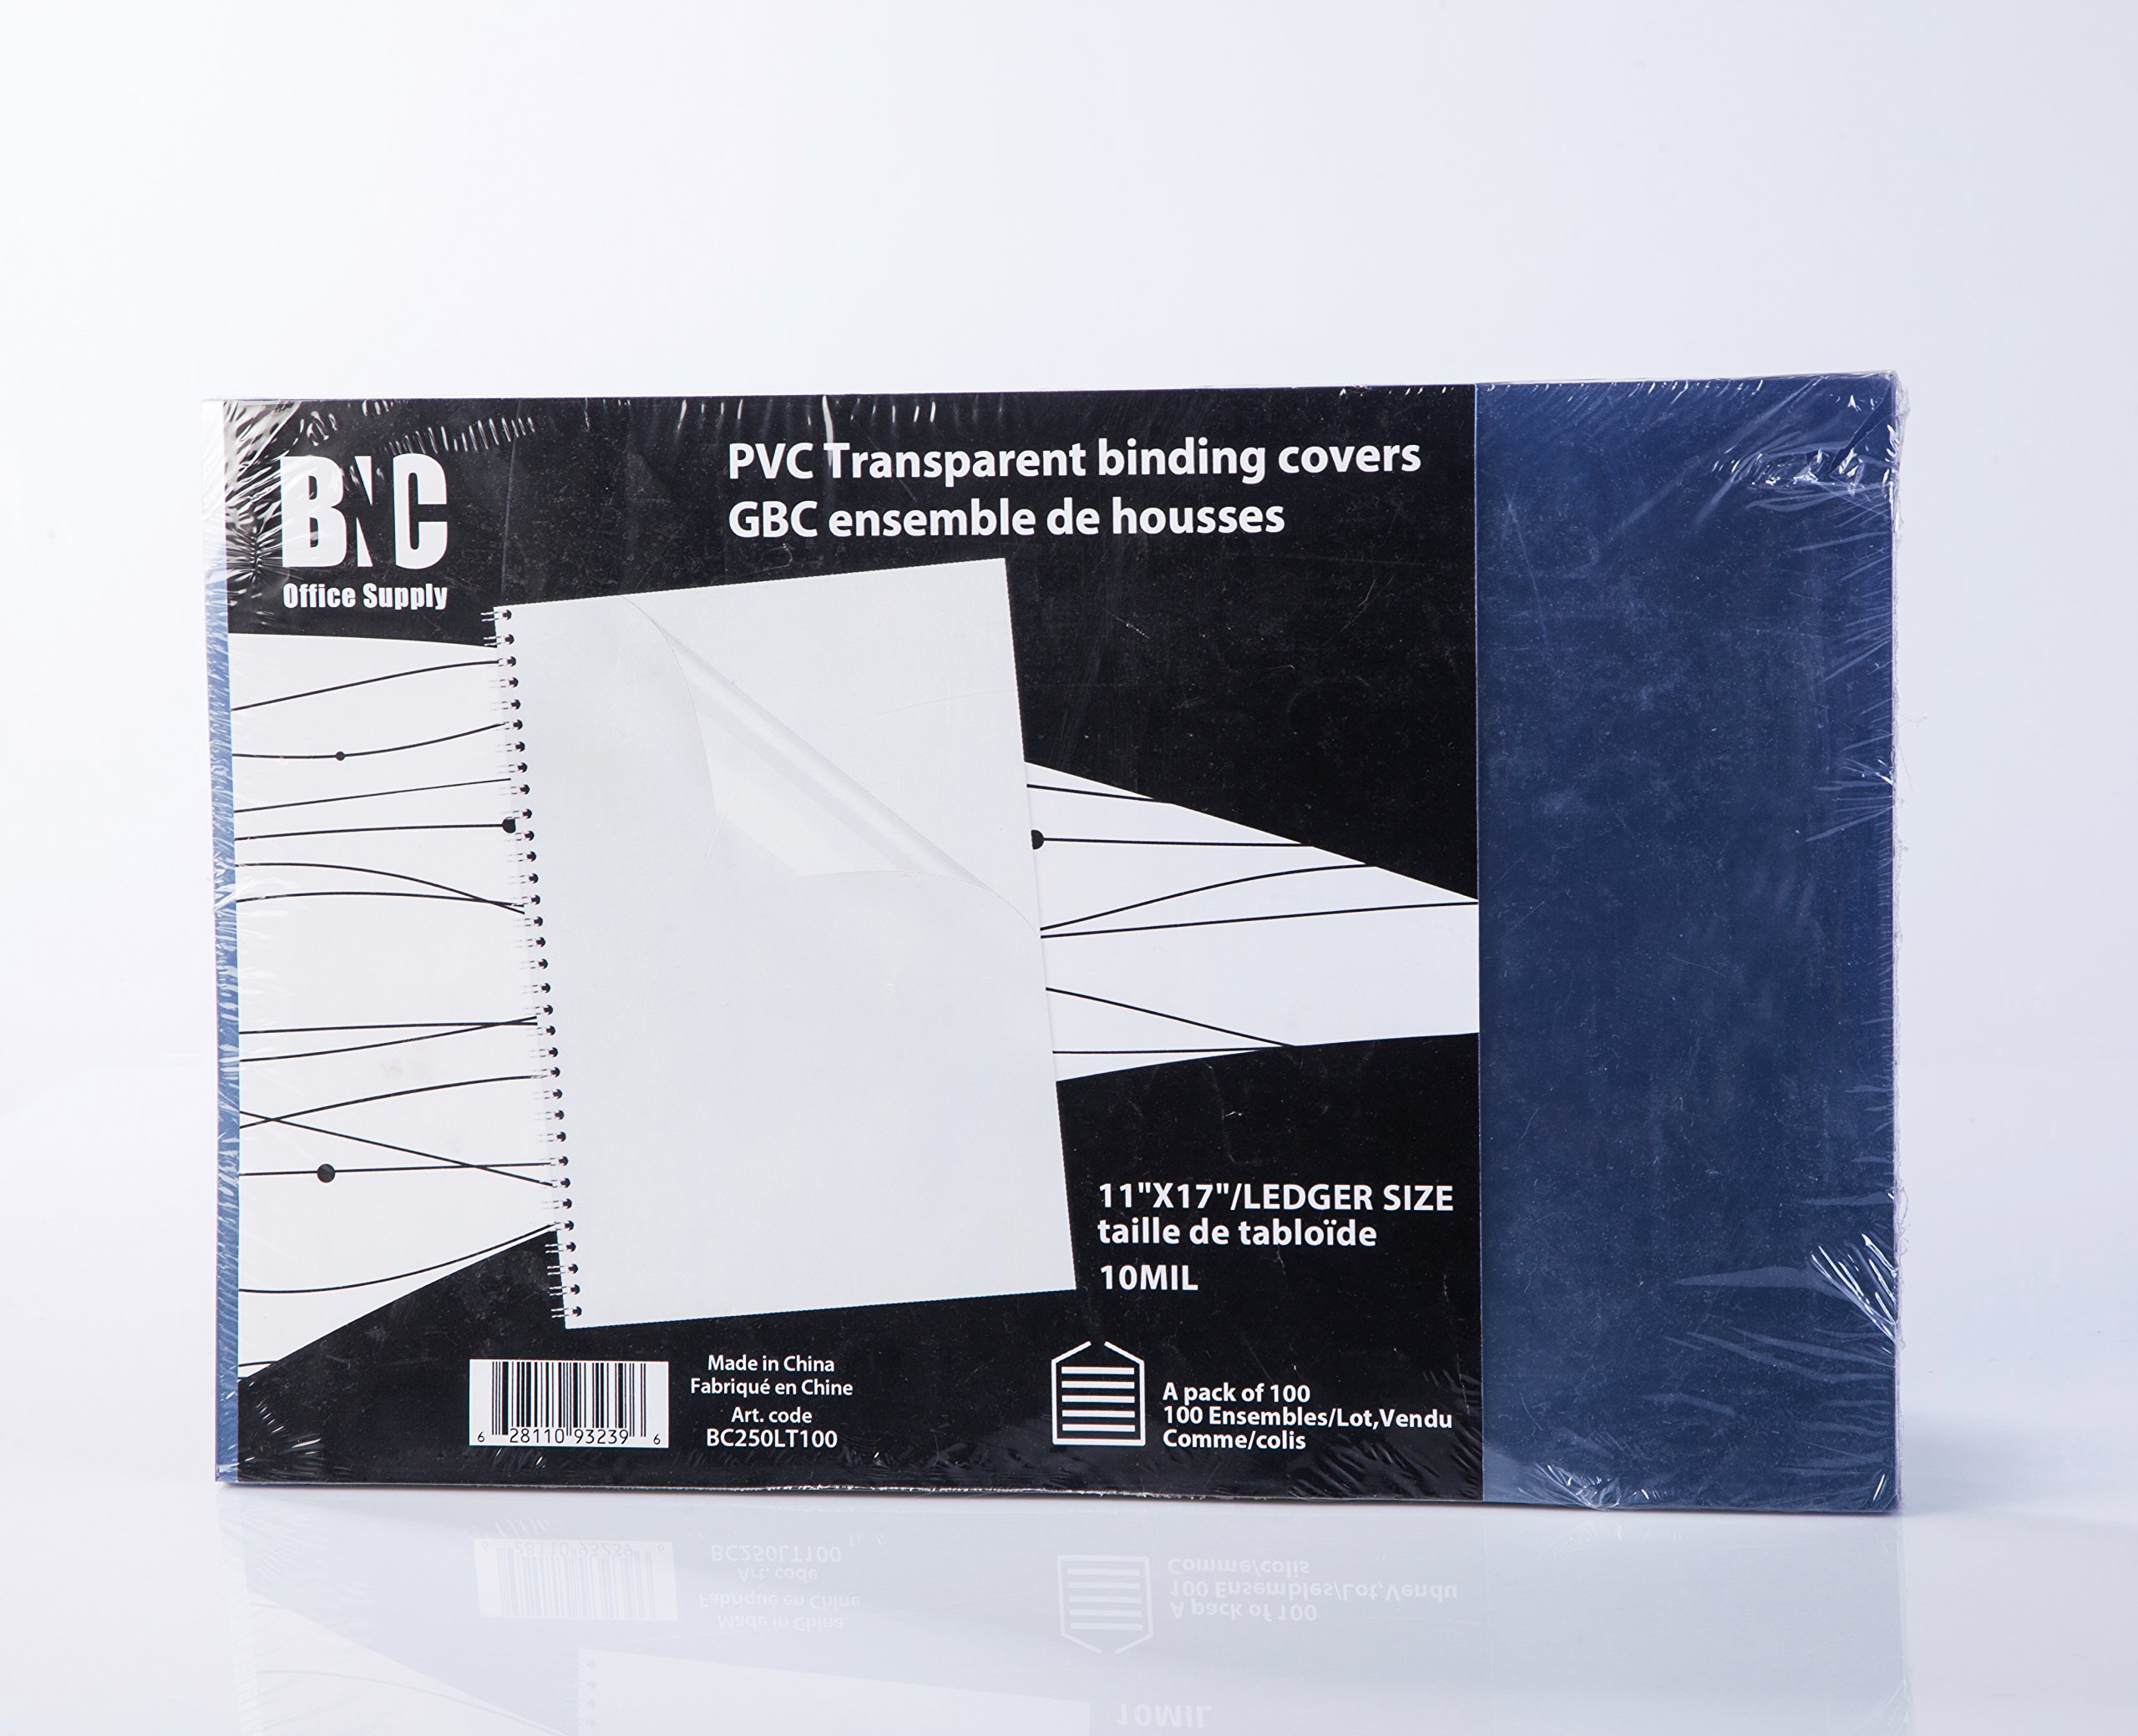 BNC 10 Mil 11X17 Inches, Ledger Size PVC Binding Covers - Pack of 100, Clear (BC250LT100) by BNC Office Supply (Image #1)